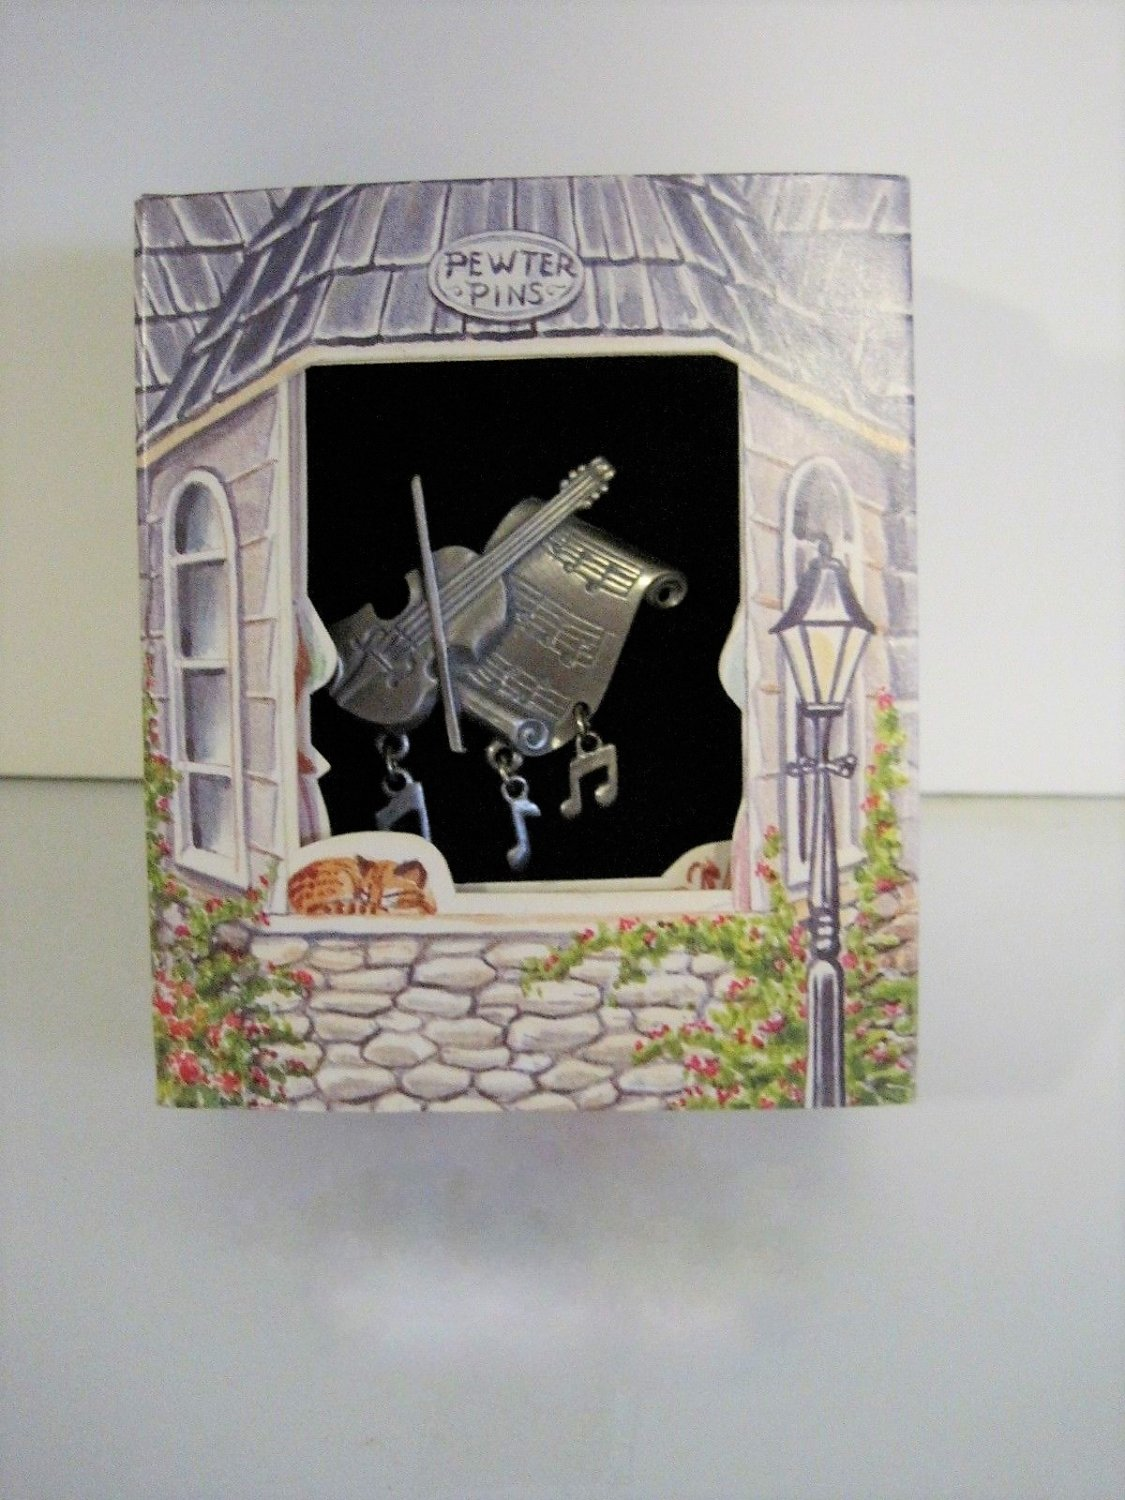 Lindsay Claire Designs Boxed Pewter Pin - Violin/Music Sheet w/Dangling Charms